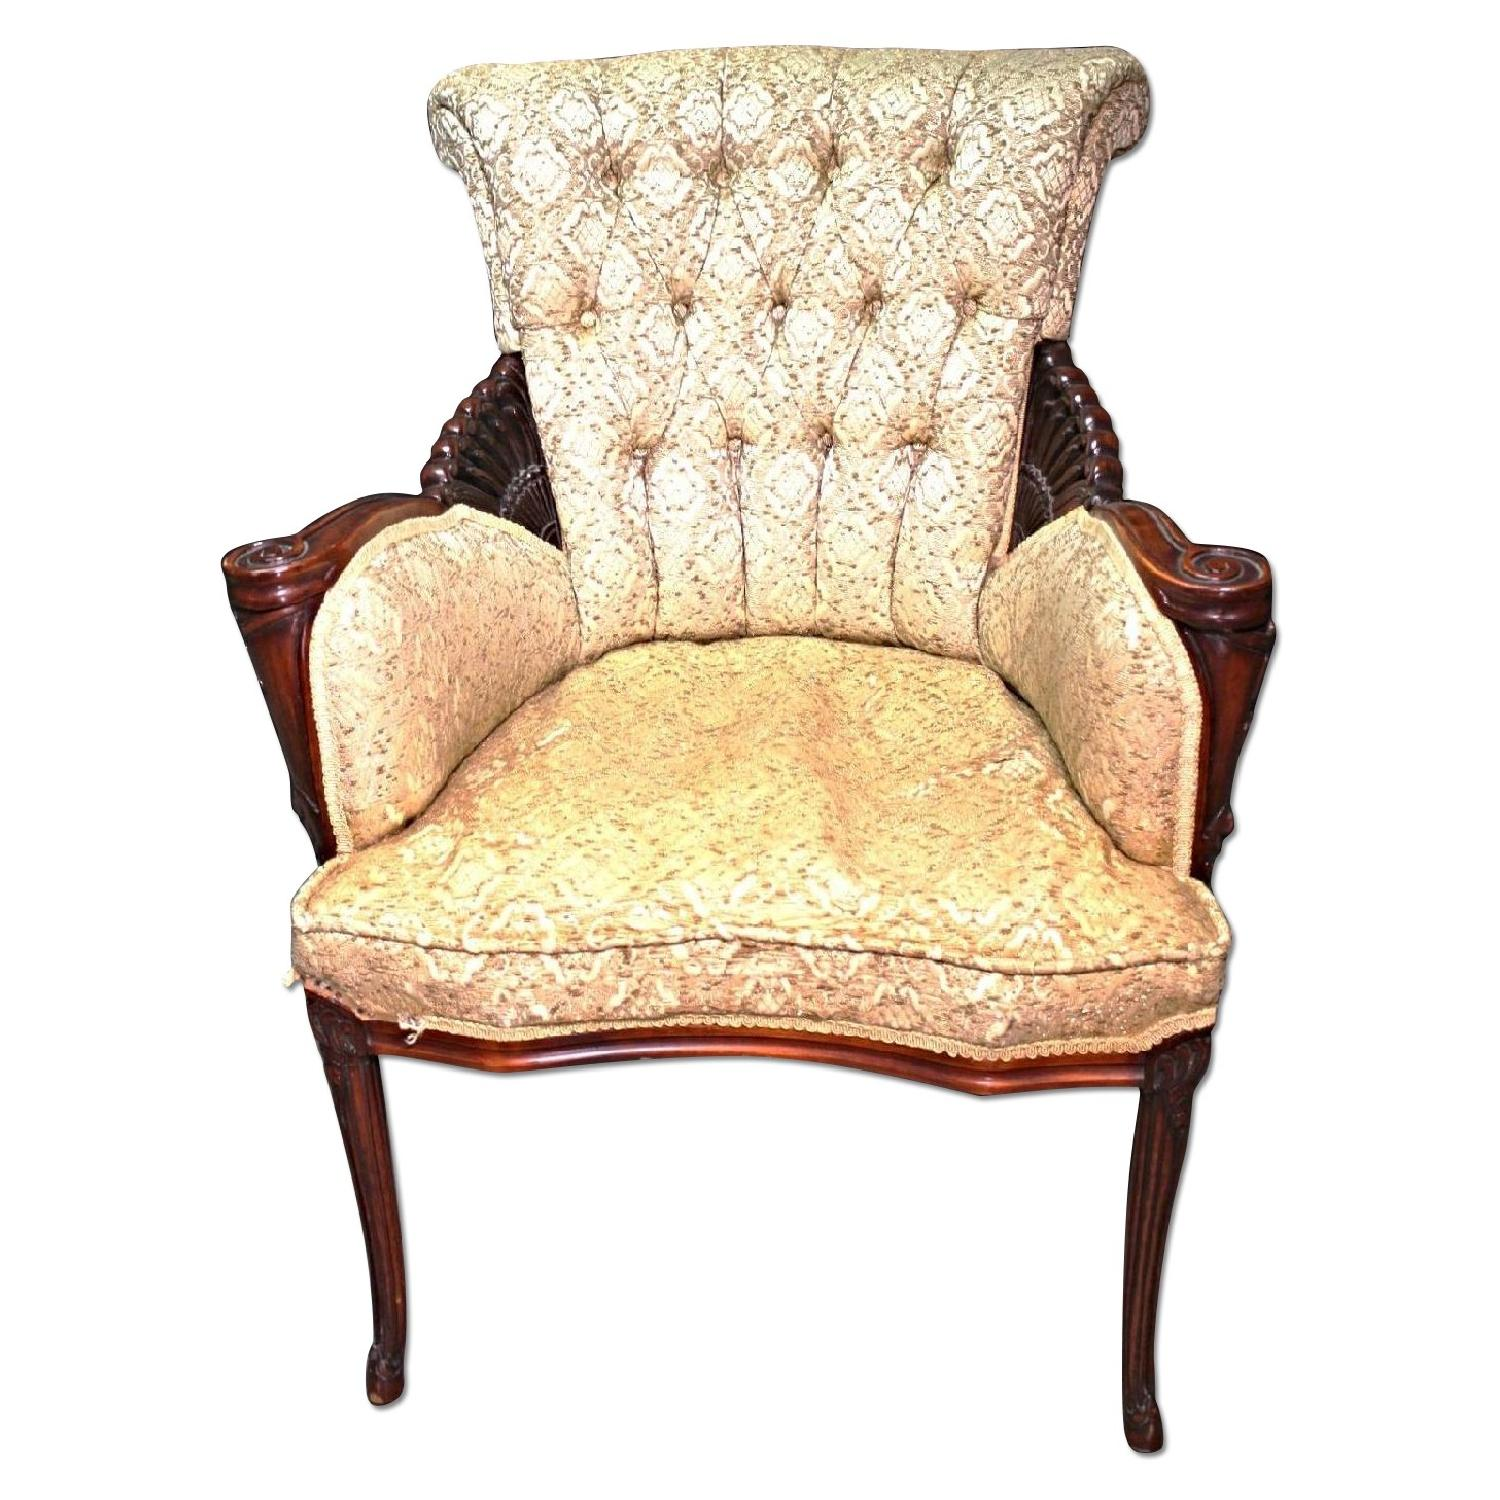 Tufted Upholstered Fireside Mahogany Armchair